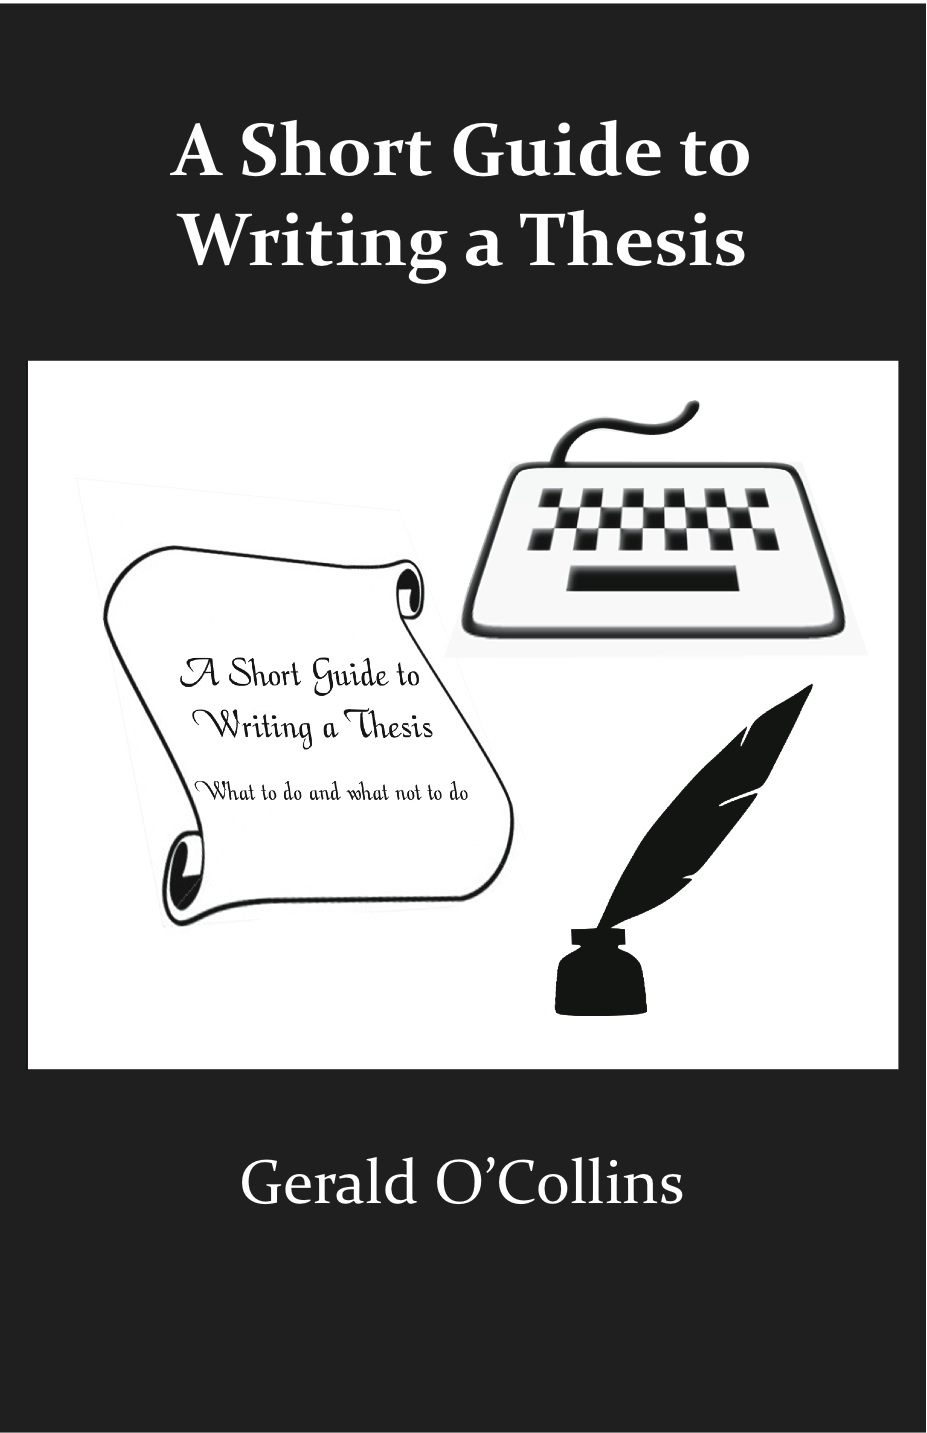 A Short Guide to Writing a Thesis: What to do and what not to do